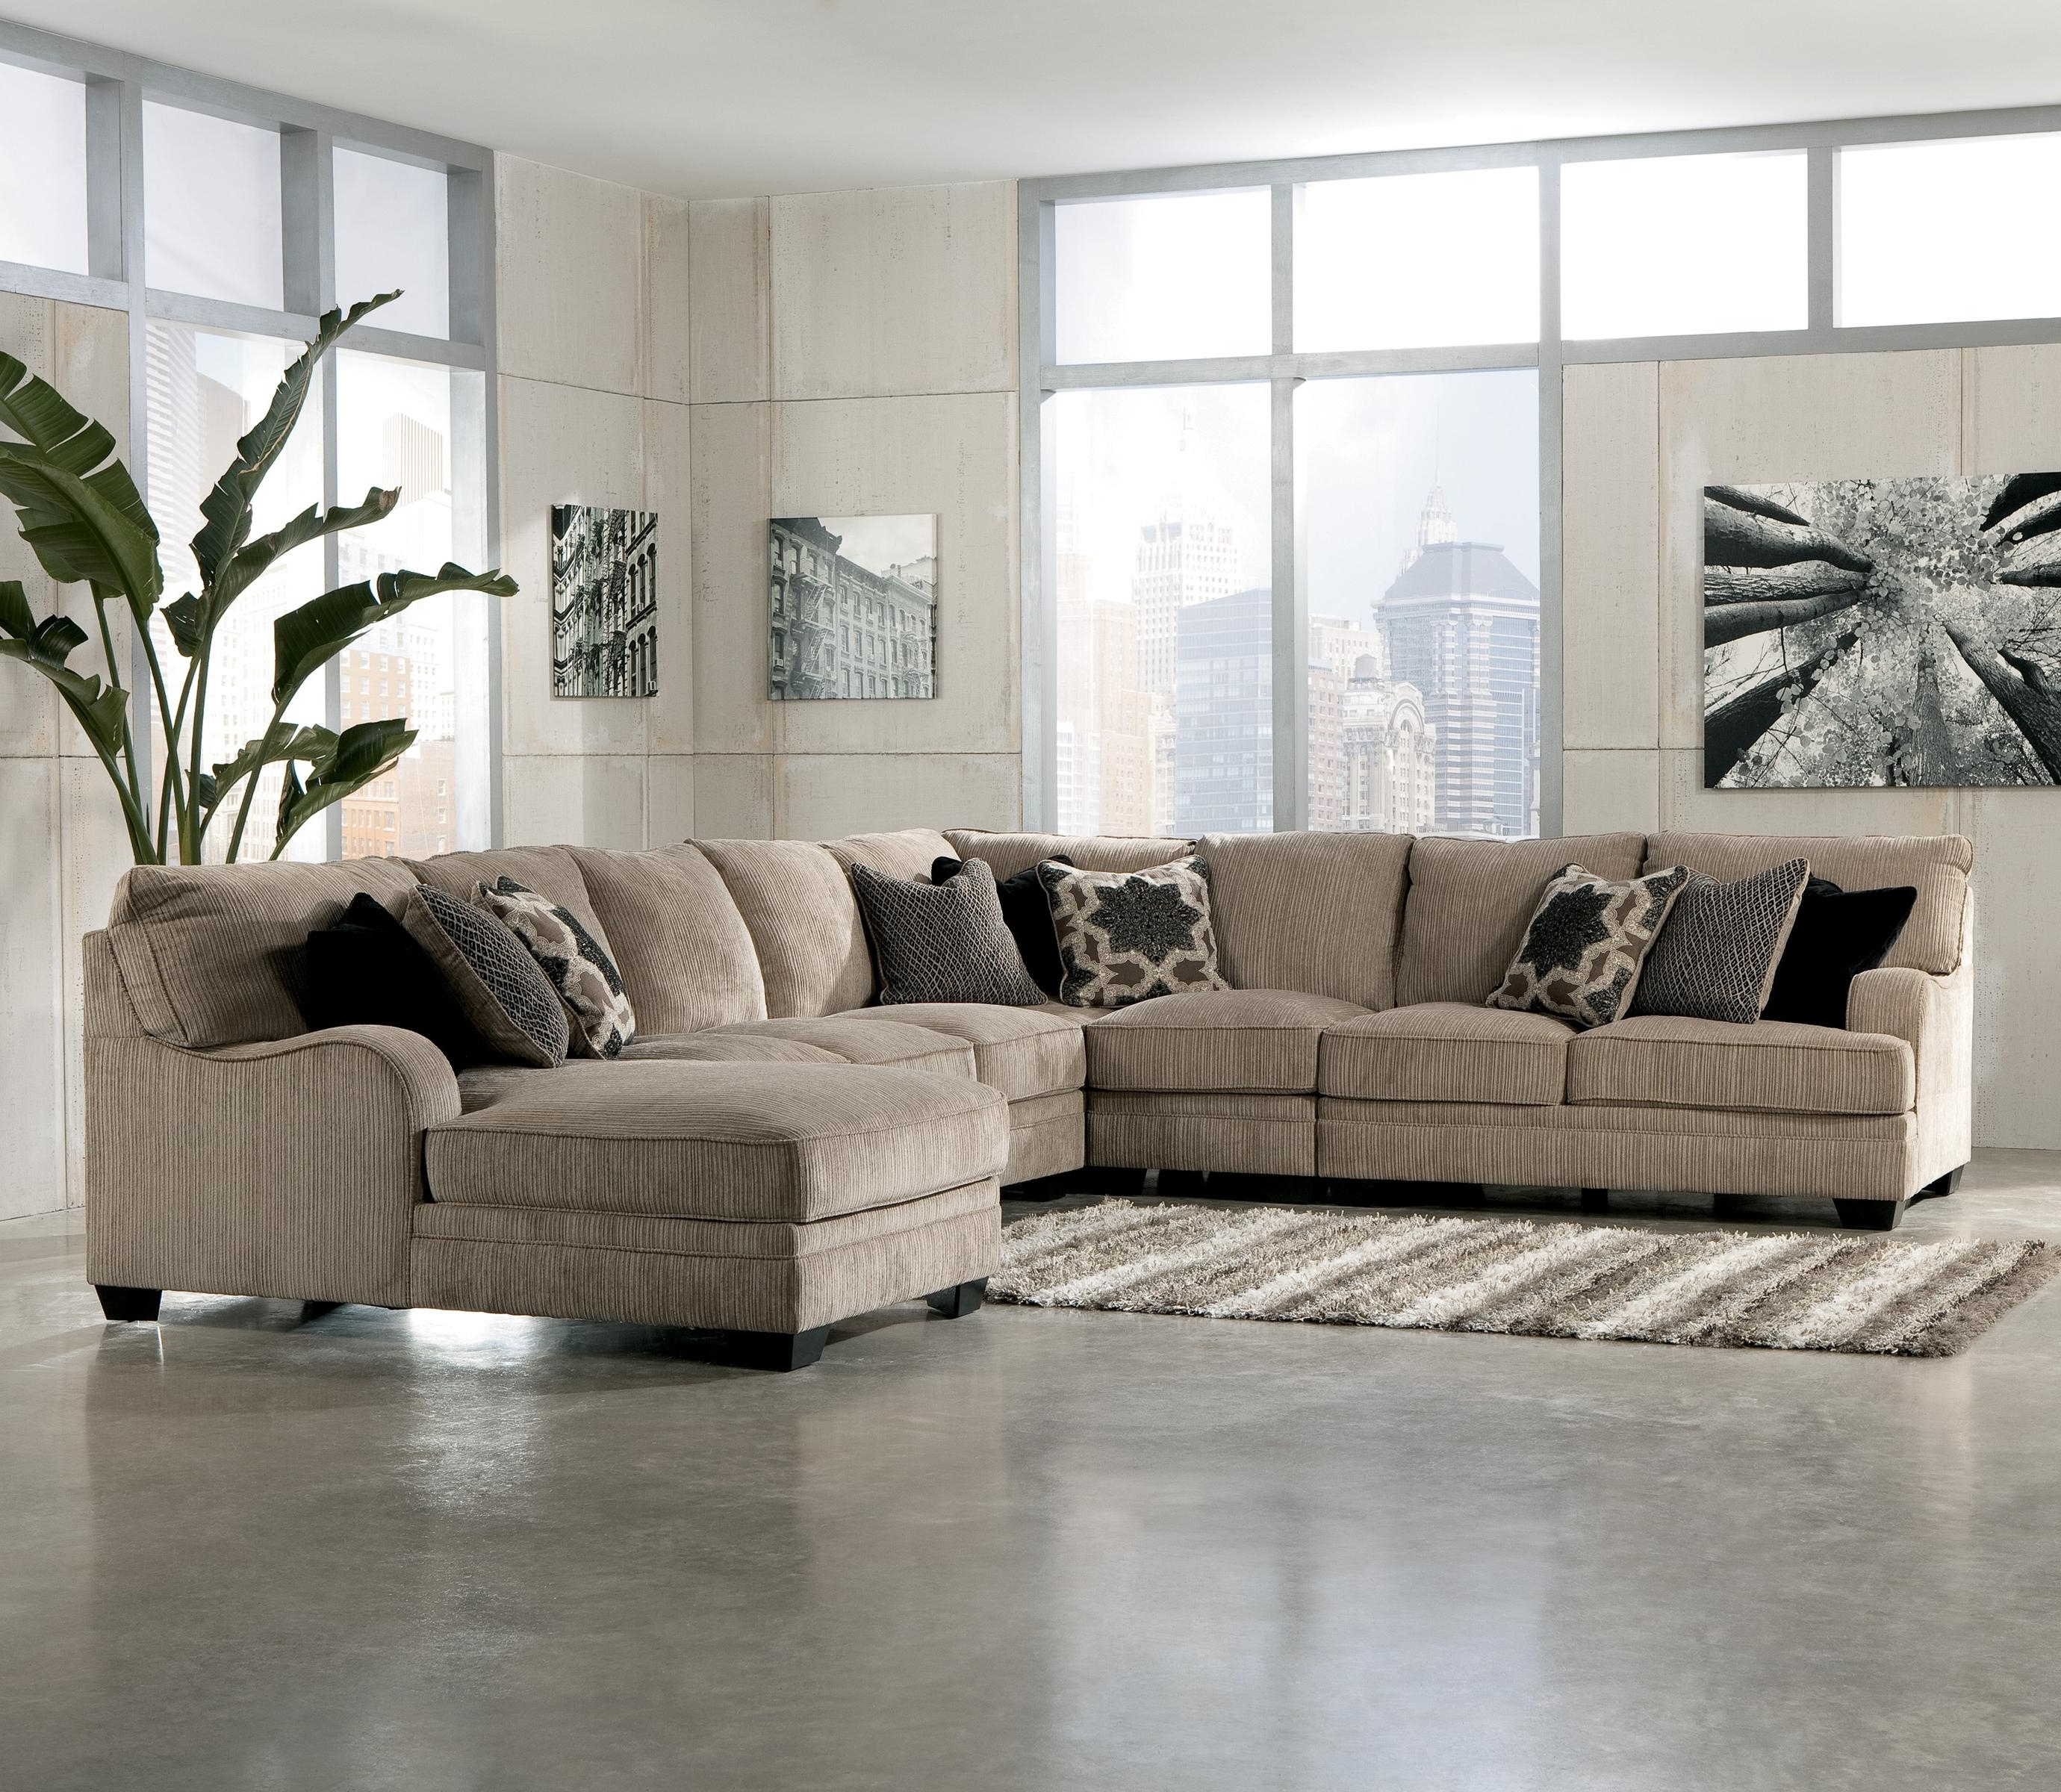 Famous Signature Designashley Katisha – Platinum 5 Piece Sectional Throughout Hattiesburg Ms Sectional Sofas (View 14 of 15)